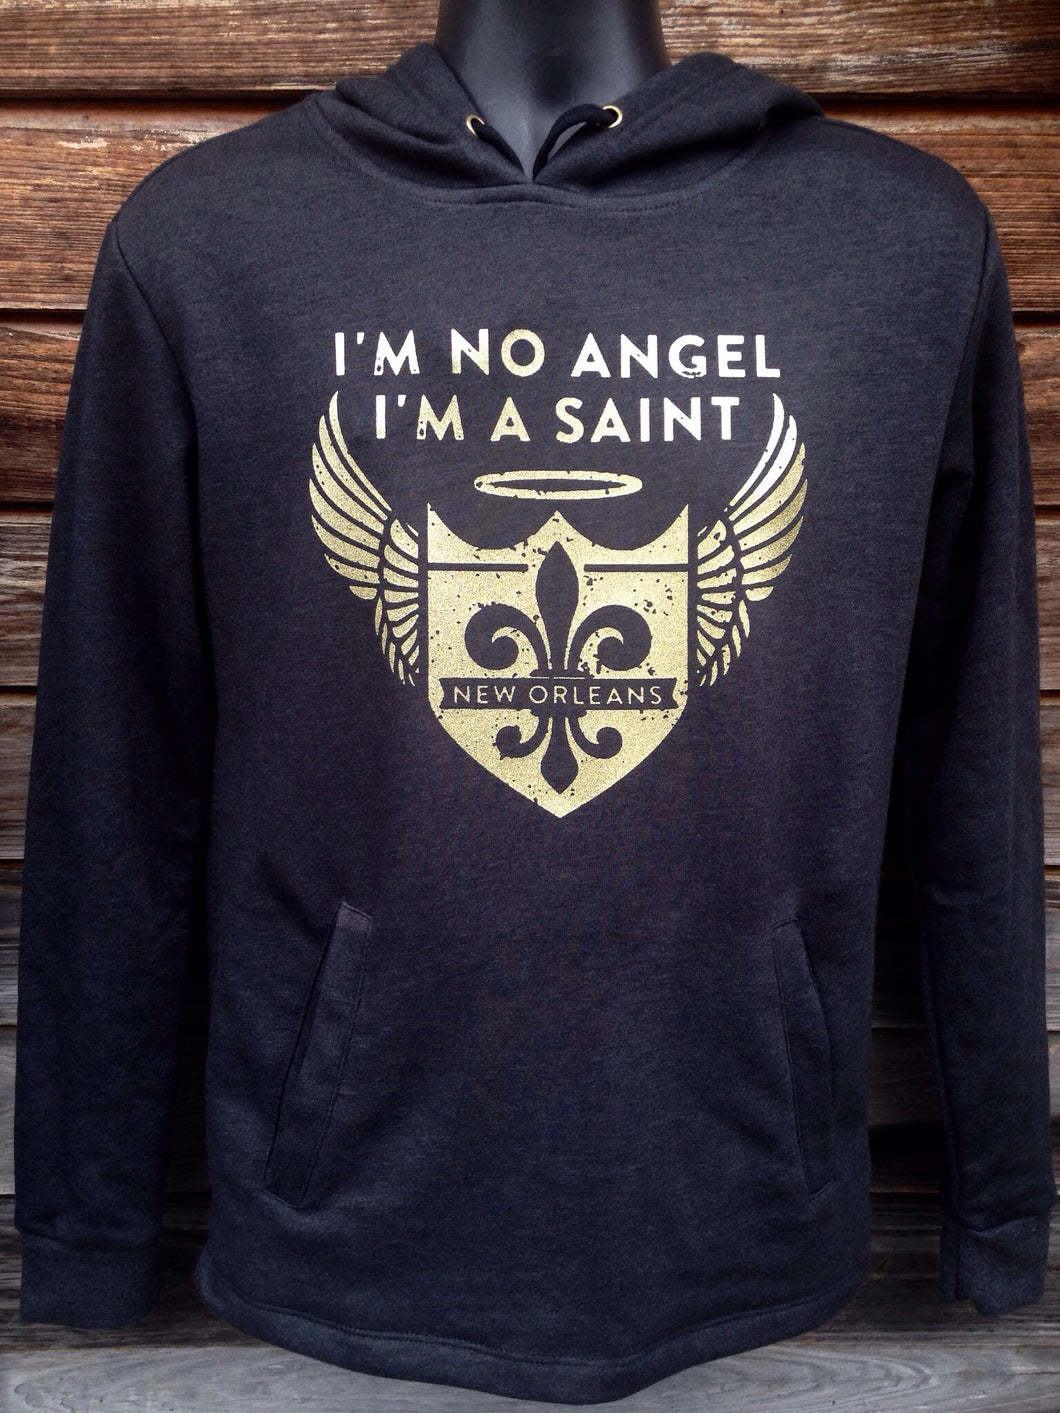 I'm No Angel, I'm a Saint, Pull-Over Hoodie